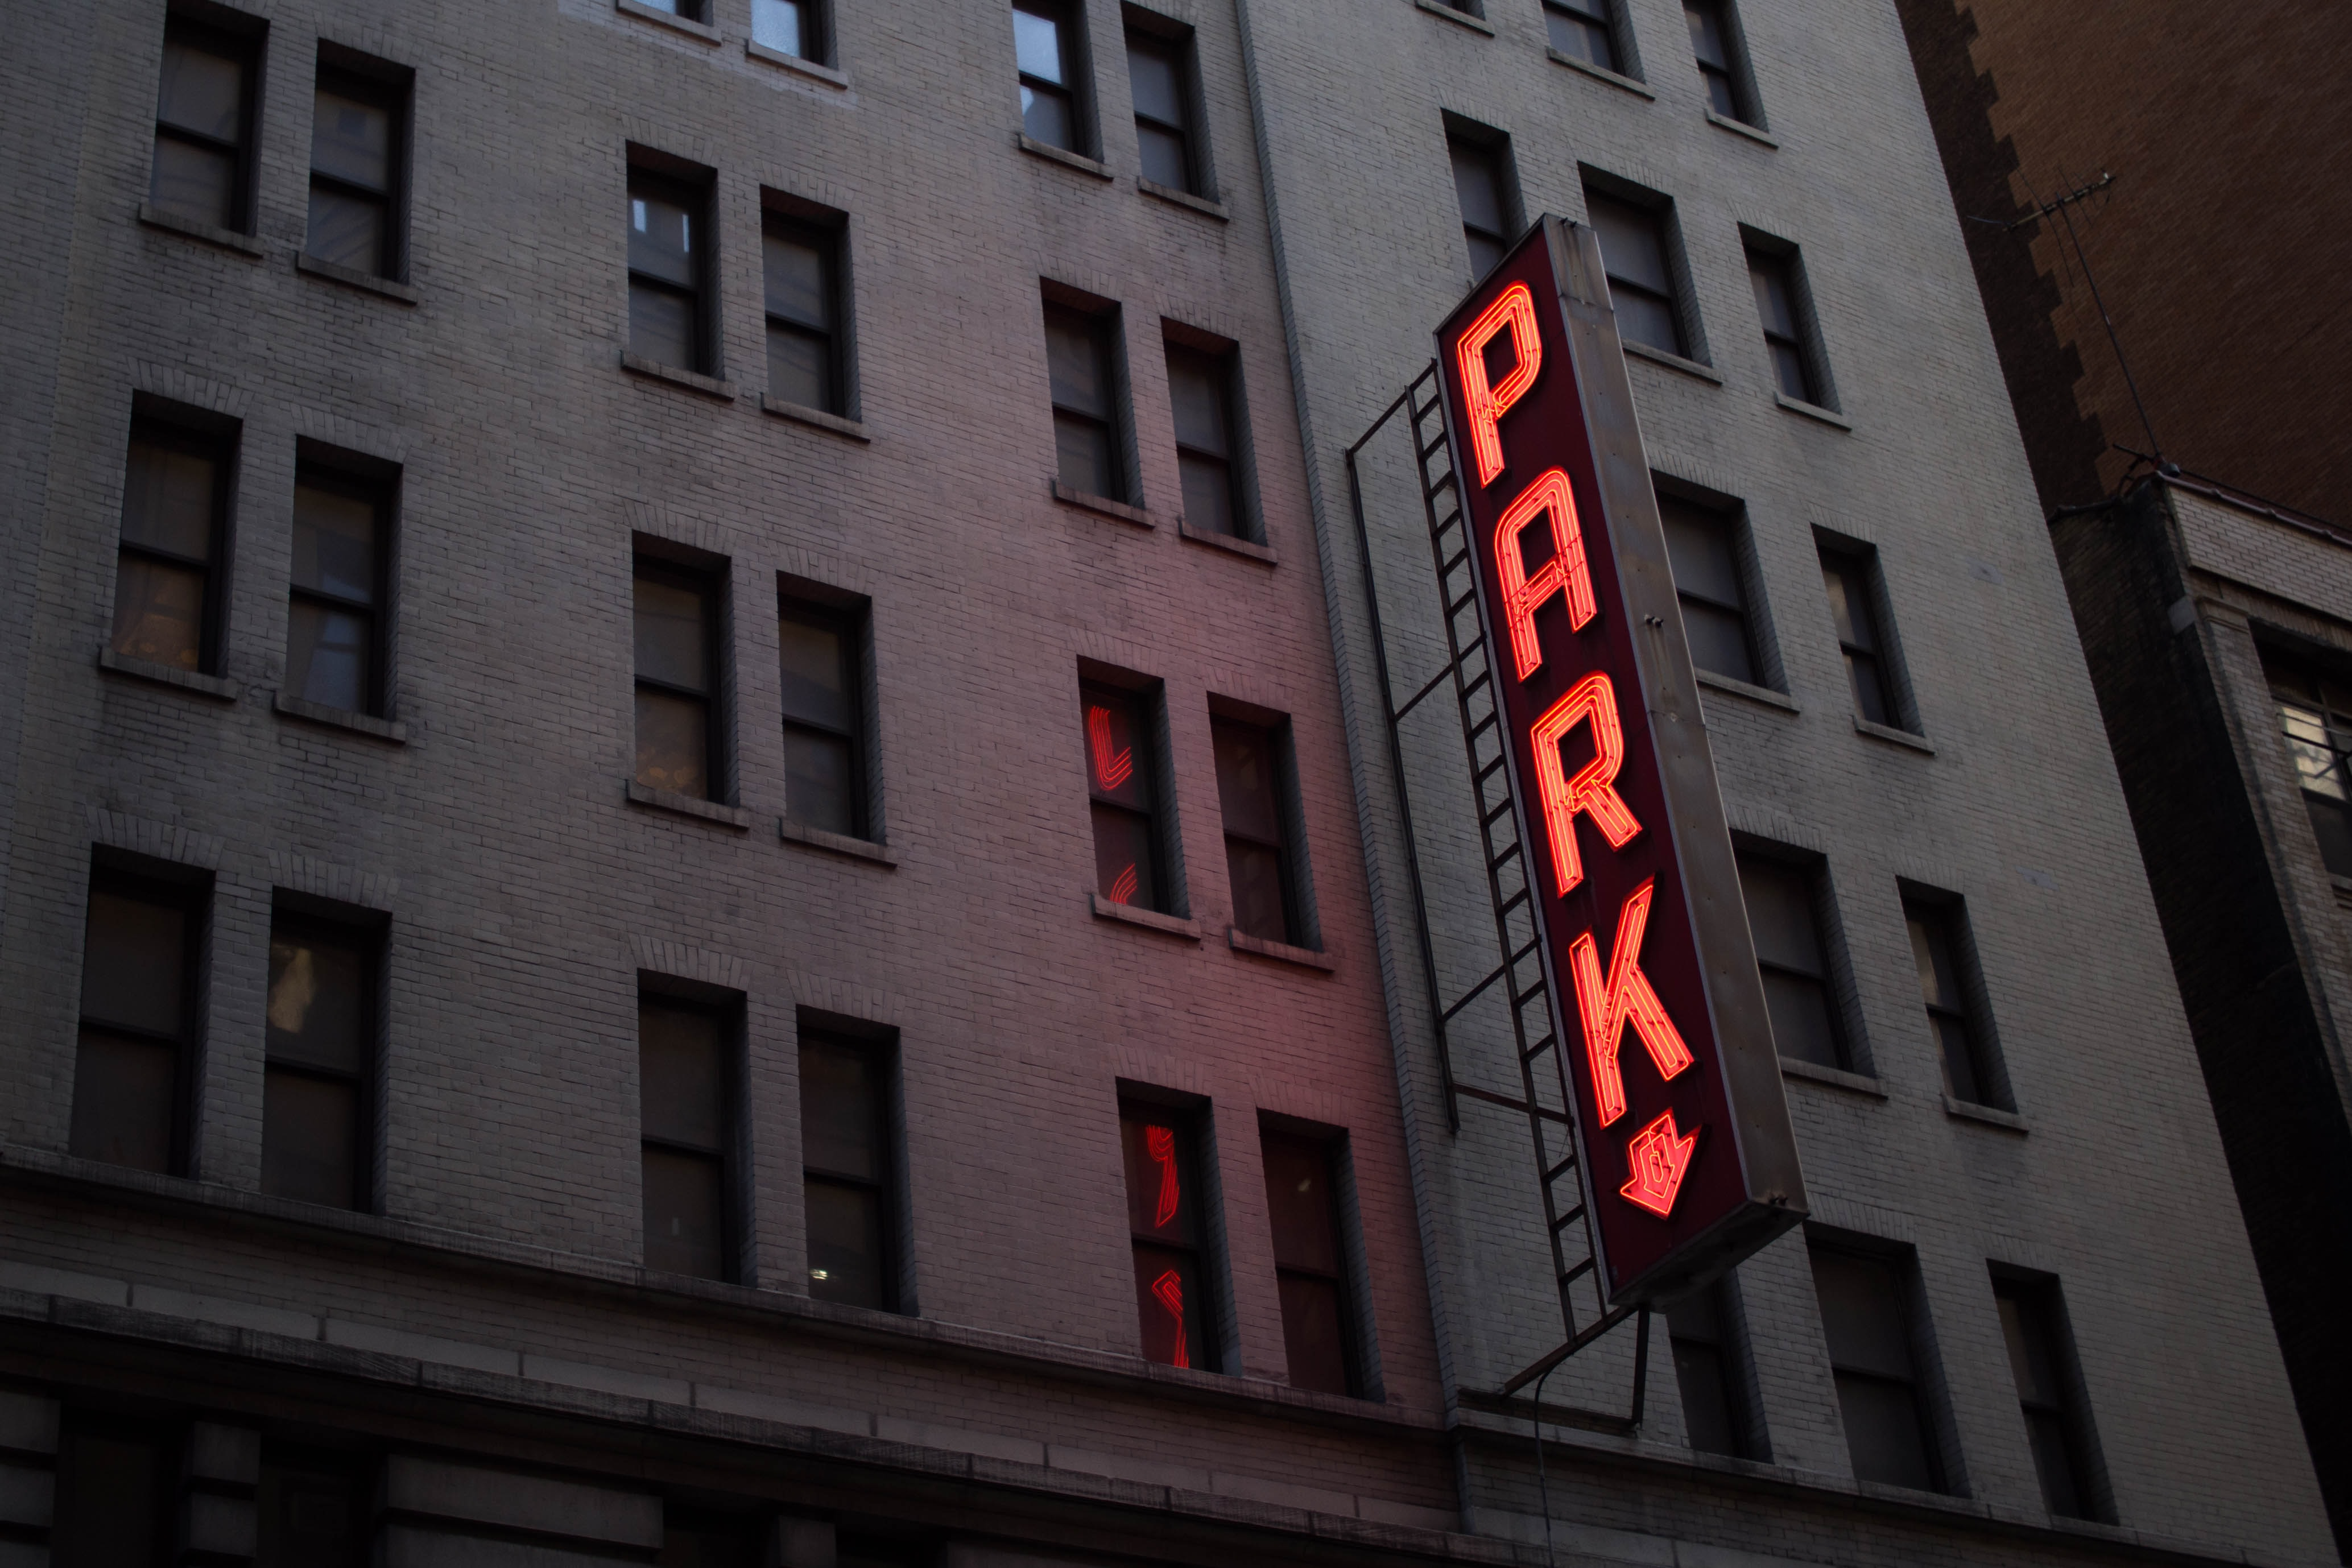 red Park light signage on gray concrete building